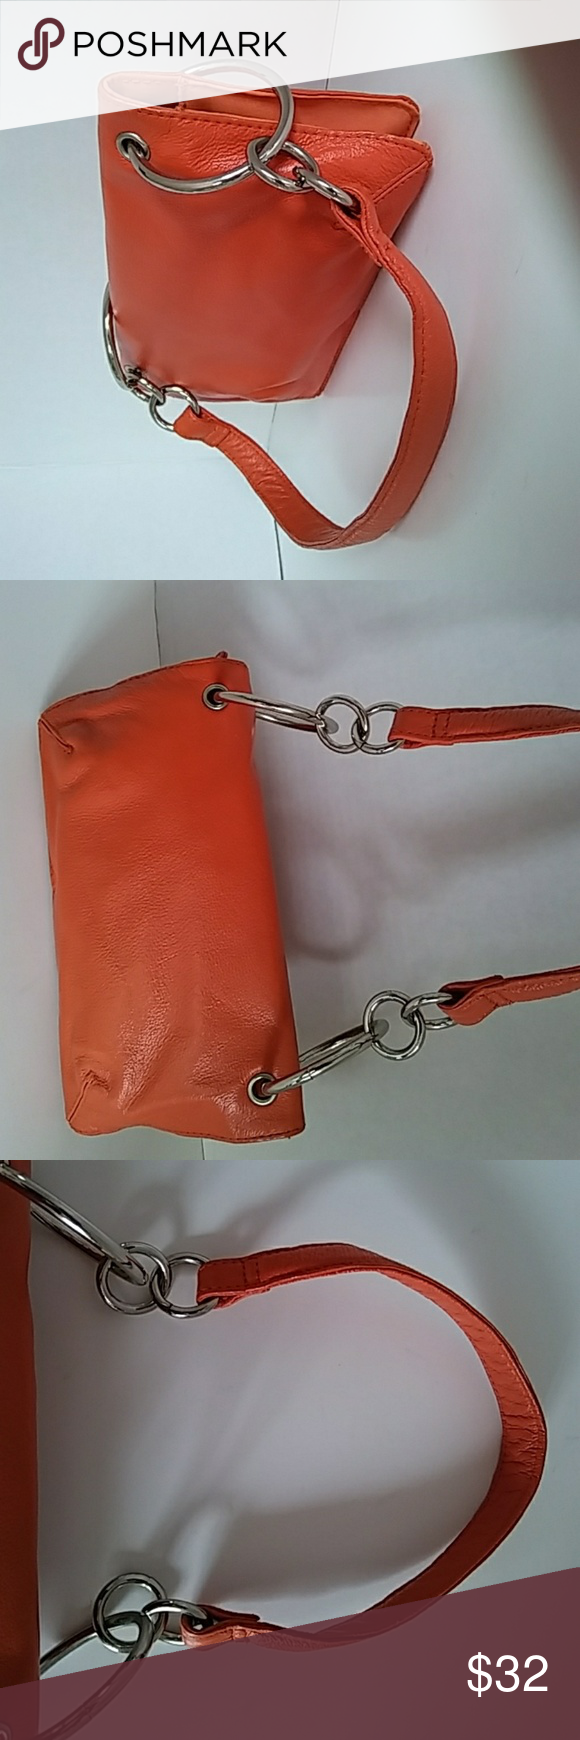 WILSON LEATHER PRETTY💚RETRO STYLE MINI PURSE woma Genuine Leather  Pre loved 💚 Nice condition. Georgeus Retro Style hardware . This mini bag  is Really Pretty!!! note: the fabric inside show noticeable change in color (please see the picture), overall aparience IS OK 💚  Dimentions: 9 inch W x 5 inch H aprox Sells as Shown.  😁10% off in bundles (purchase 2 or more items and  only 1 shipping) Wilsons Leather Bags